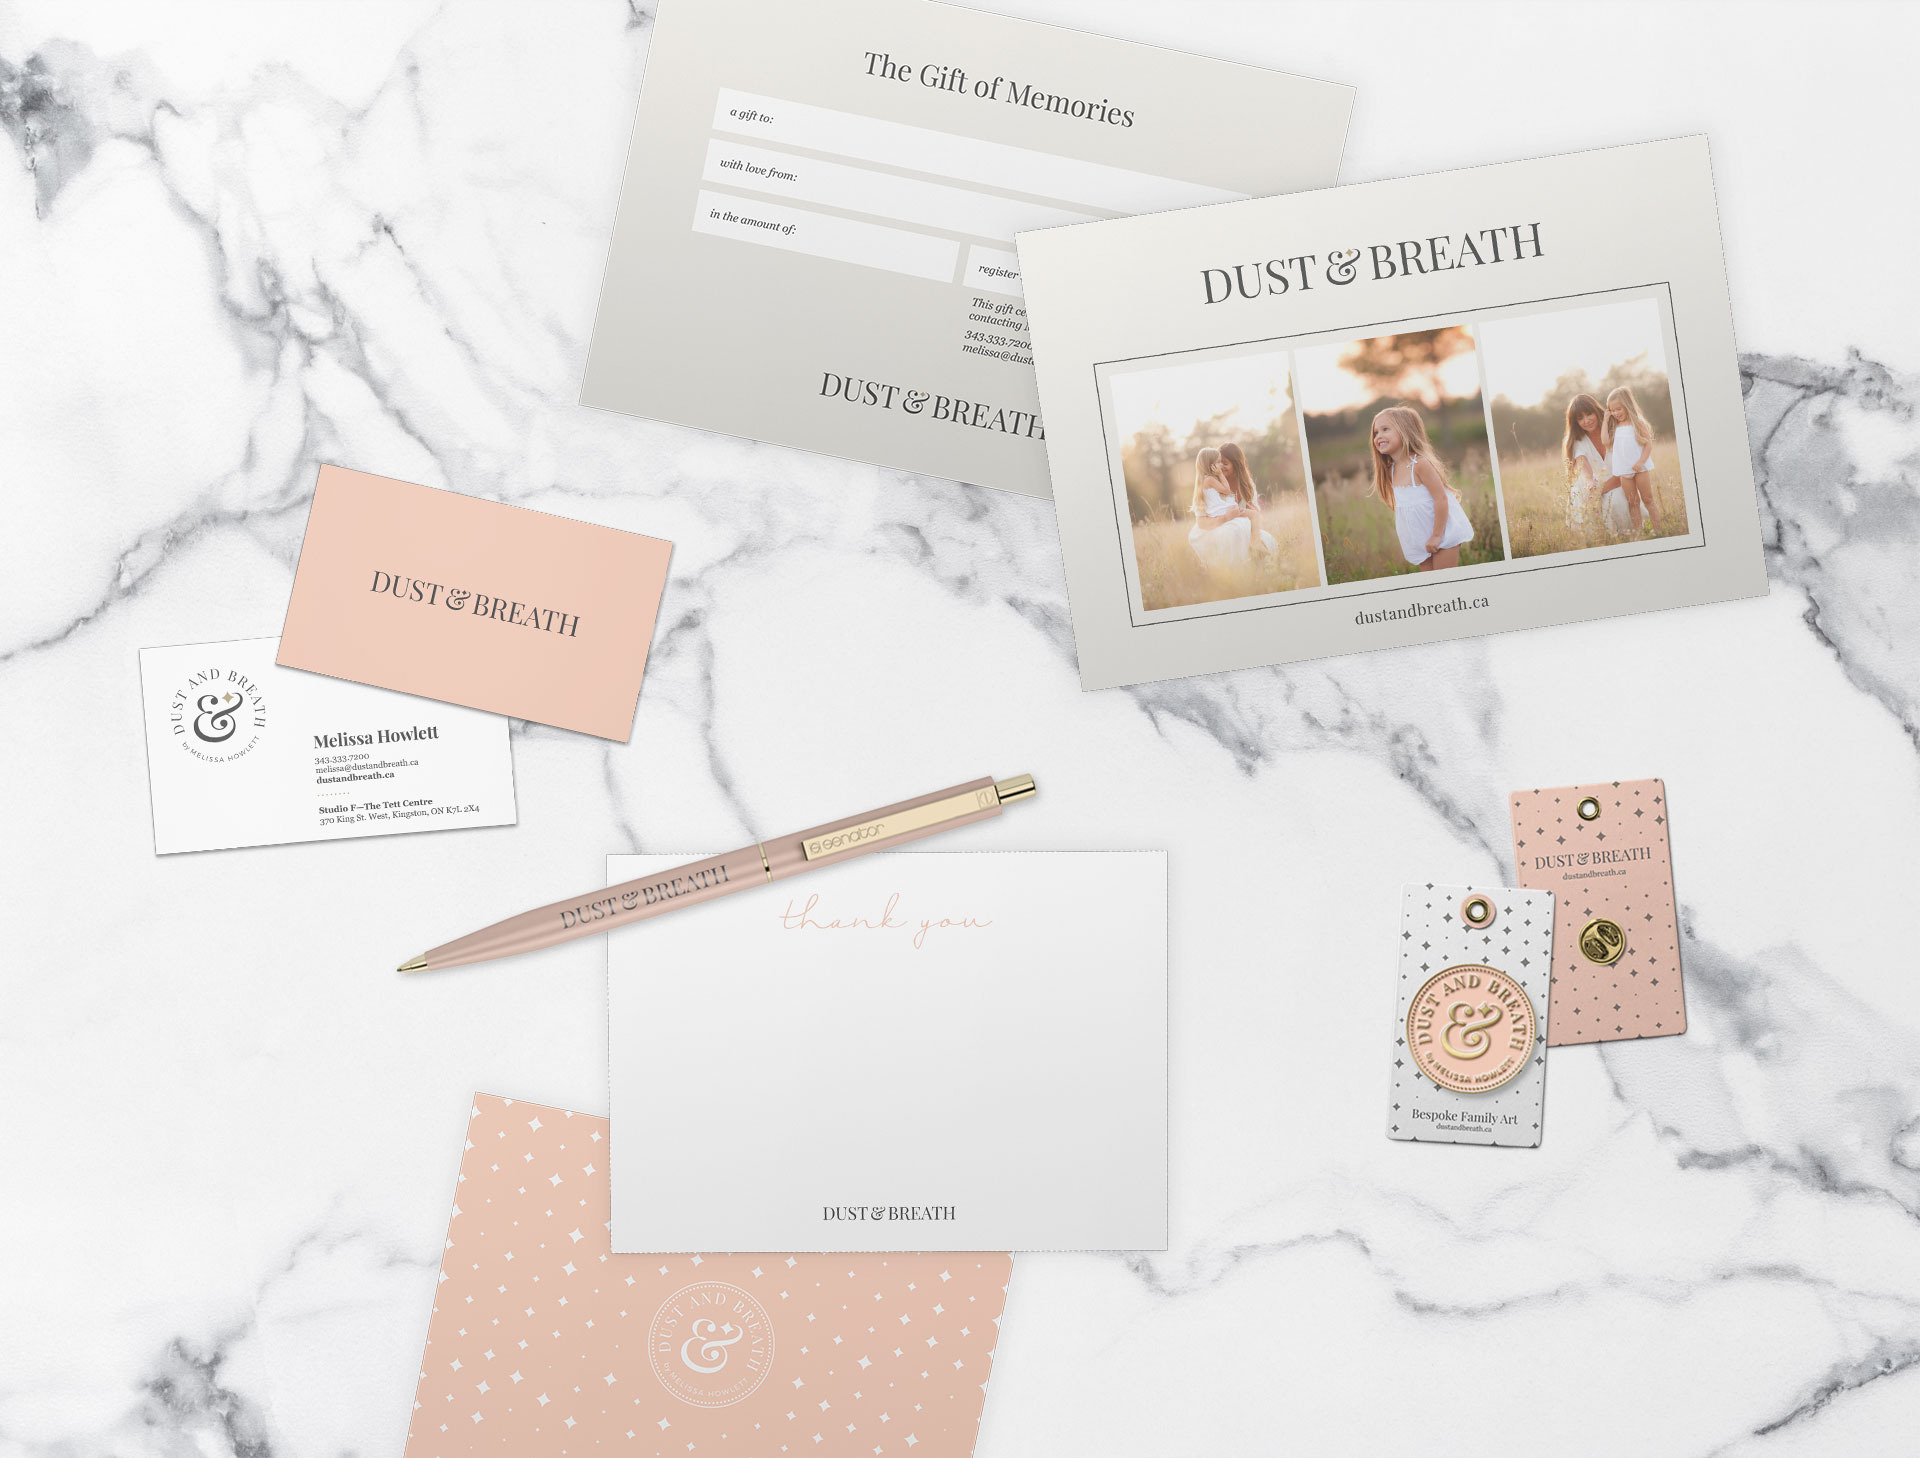 dust and breath stationery